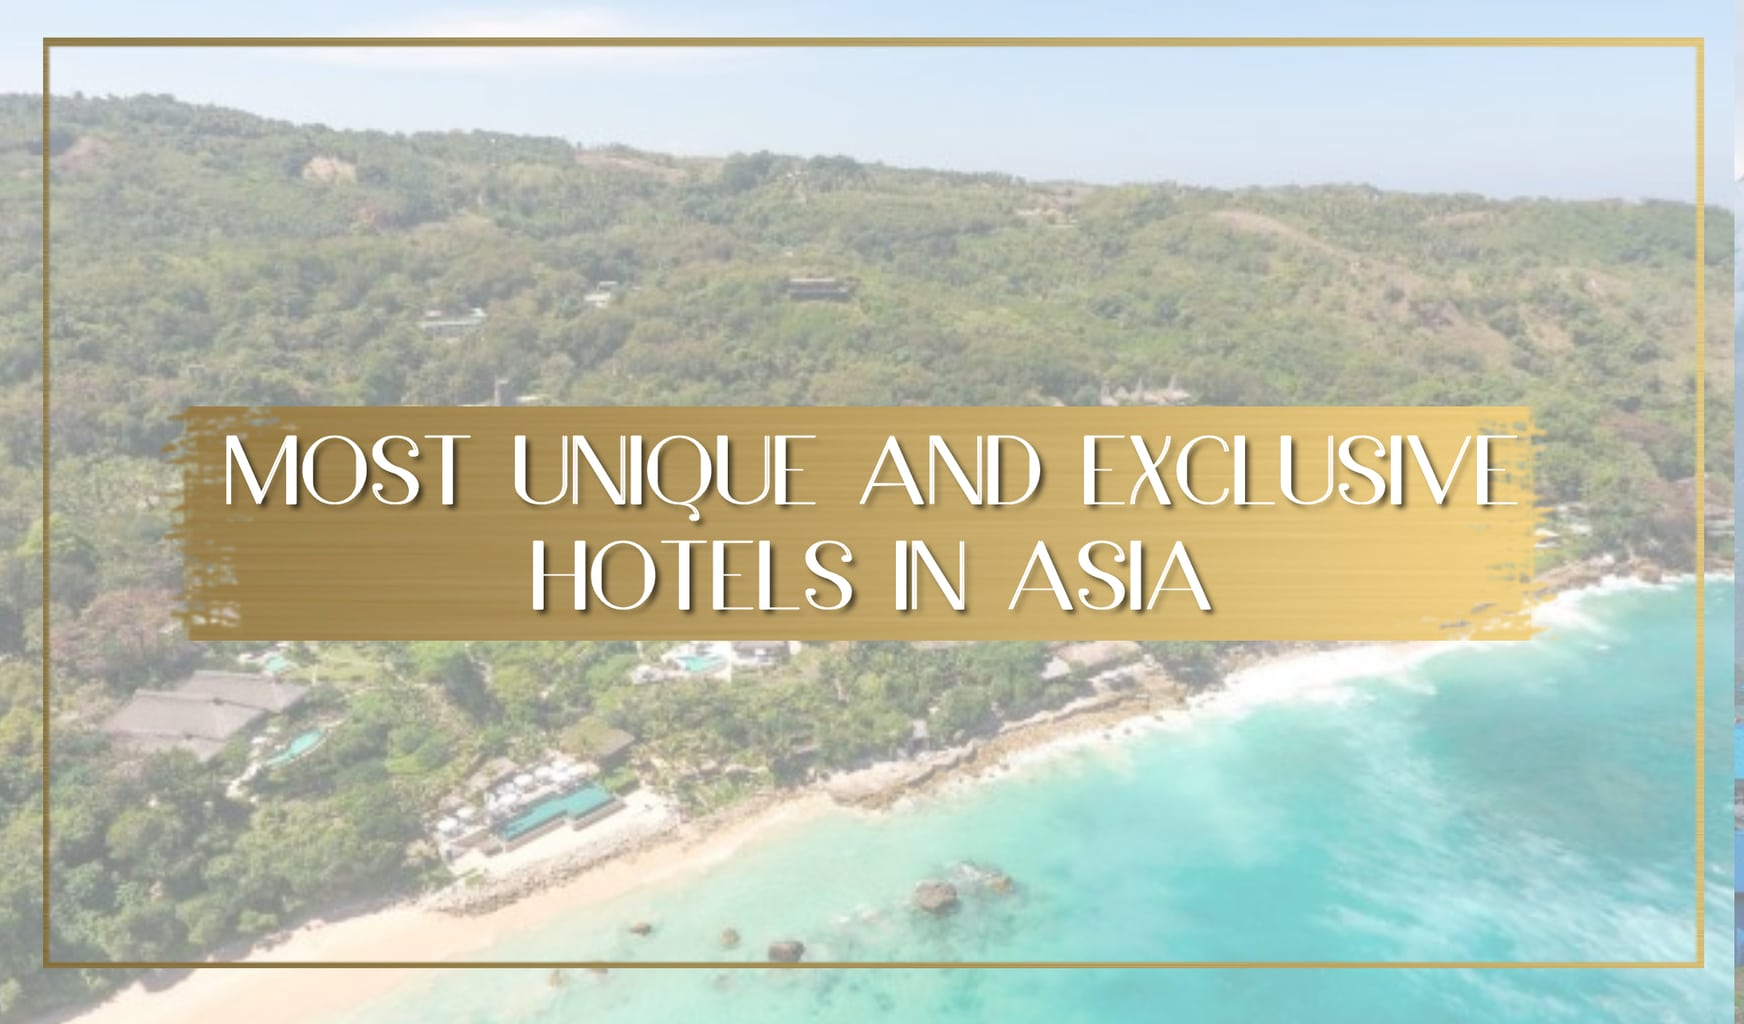 Exclusive hotels in Asia main